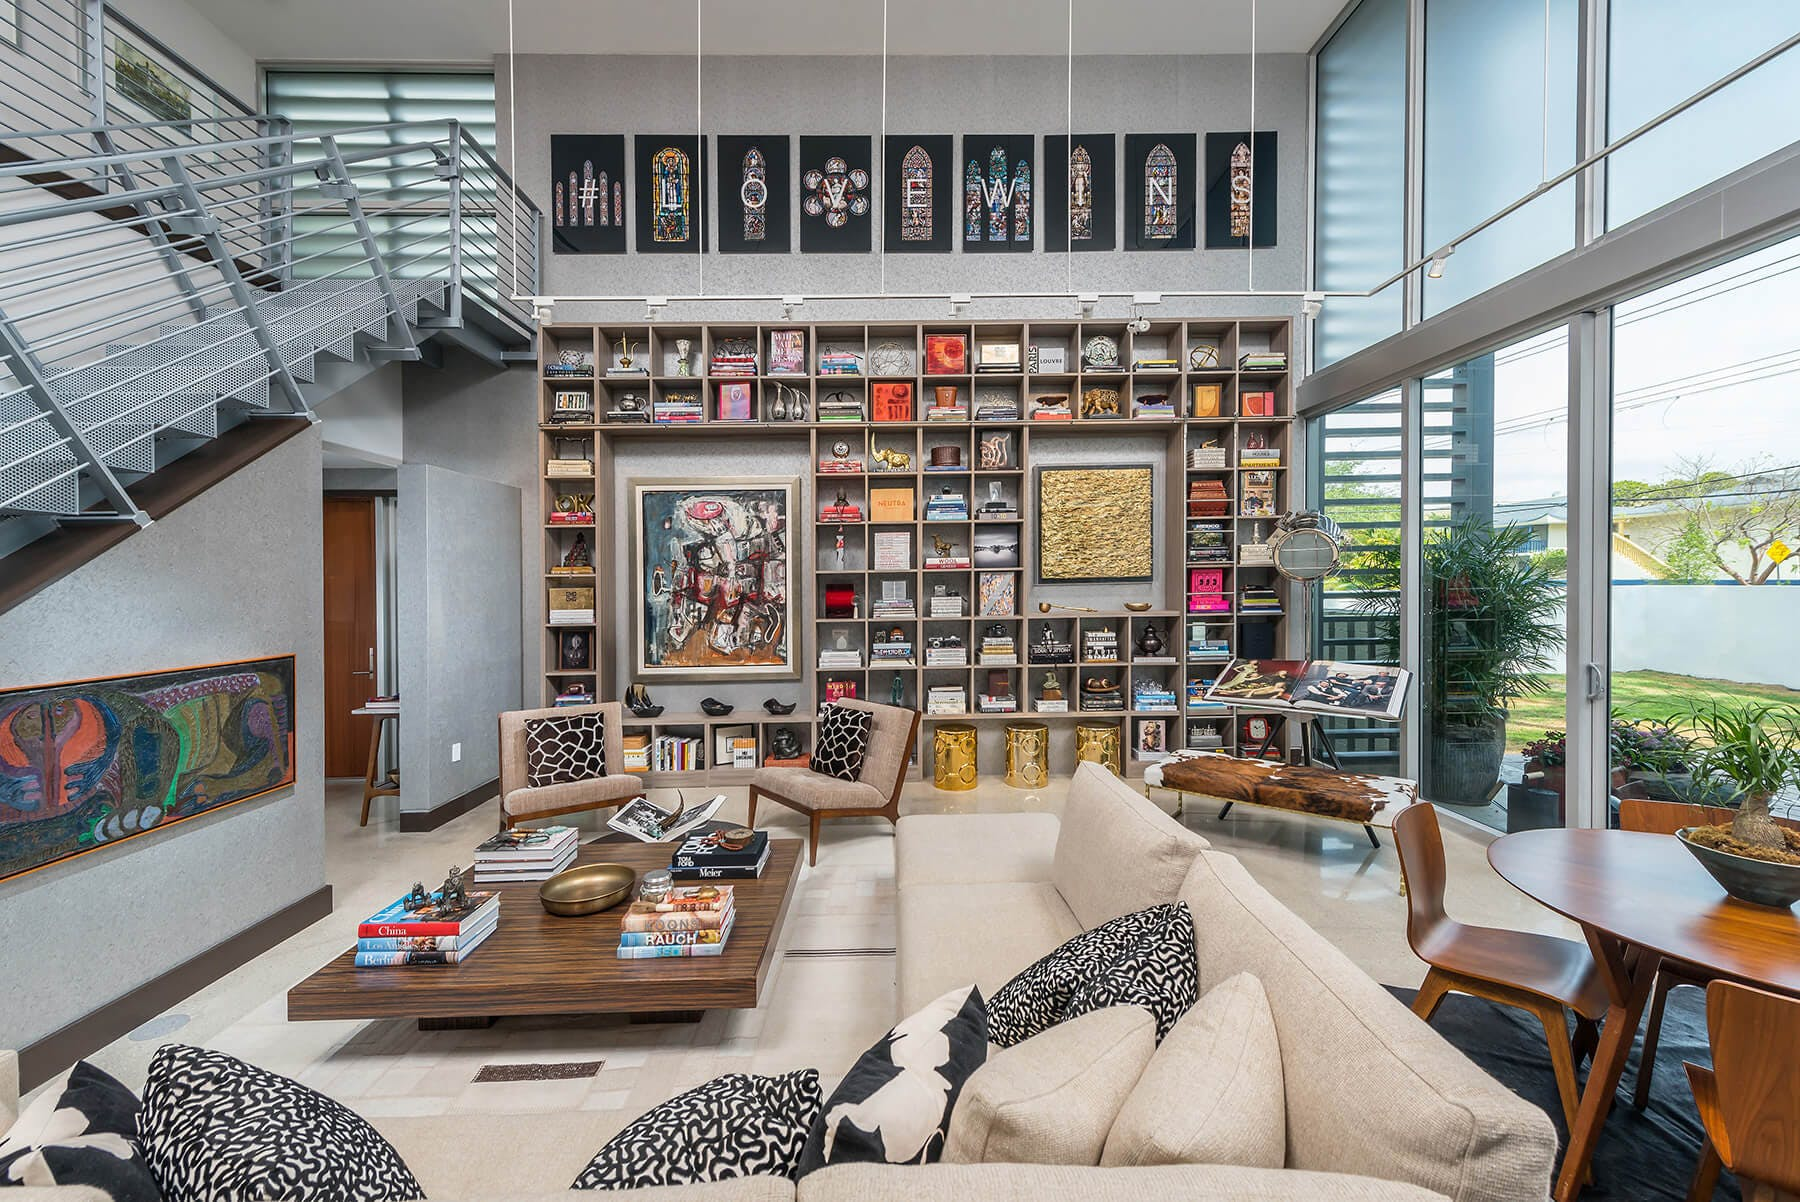 Wall unit features art collection in this miami home.